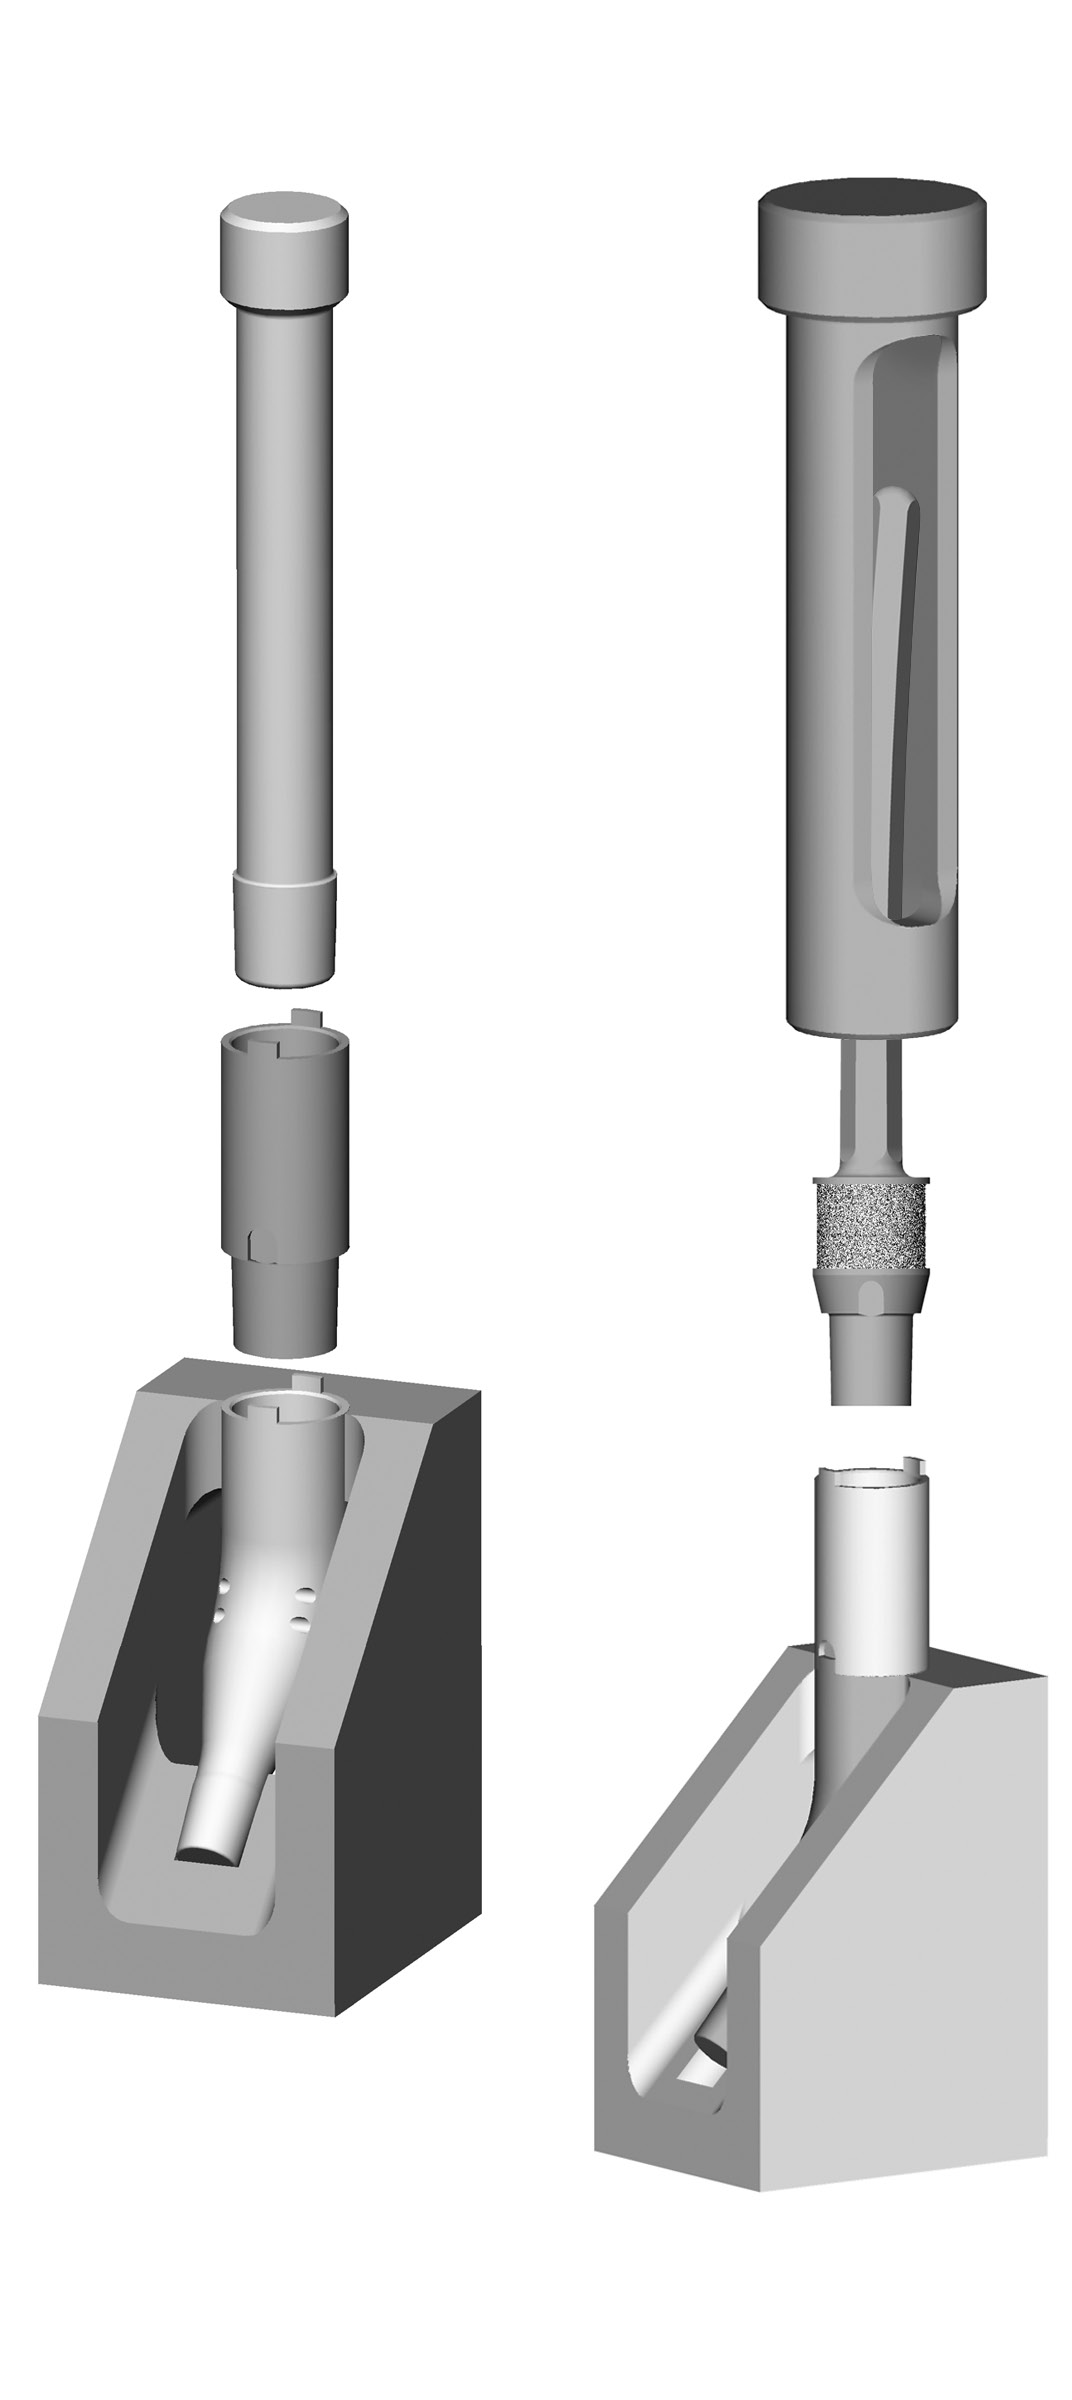 Zimmer MOST Options System Surgical Technique 43 Bowed Stem Implant Assembly Assemble the selected segment to the Basic Proximal Femur using the Impacting Stand (or the Proximal Femur with Tissue